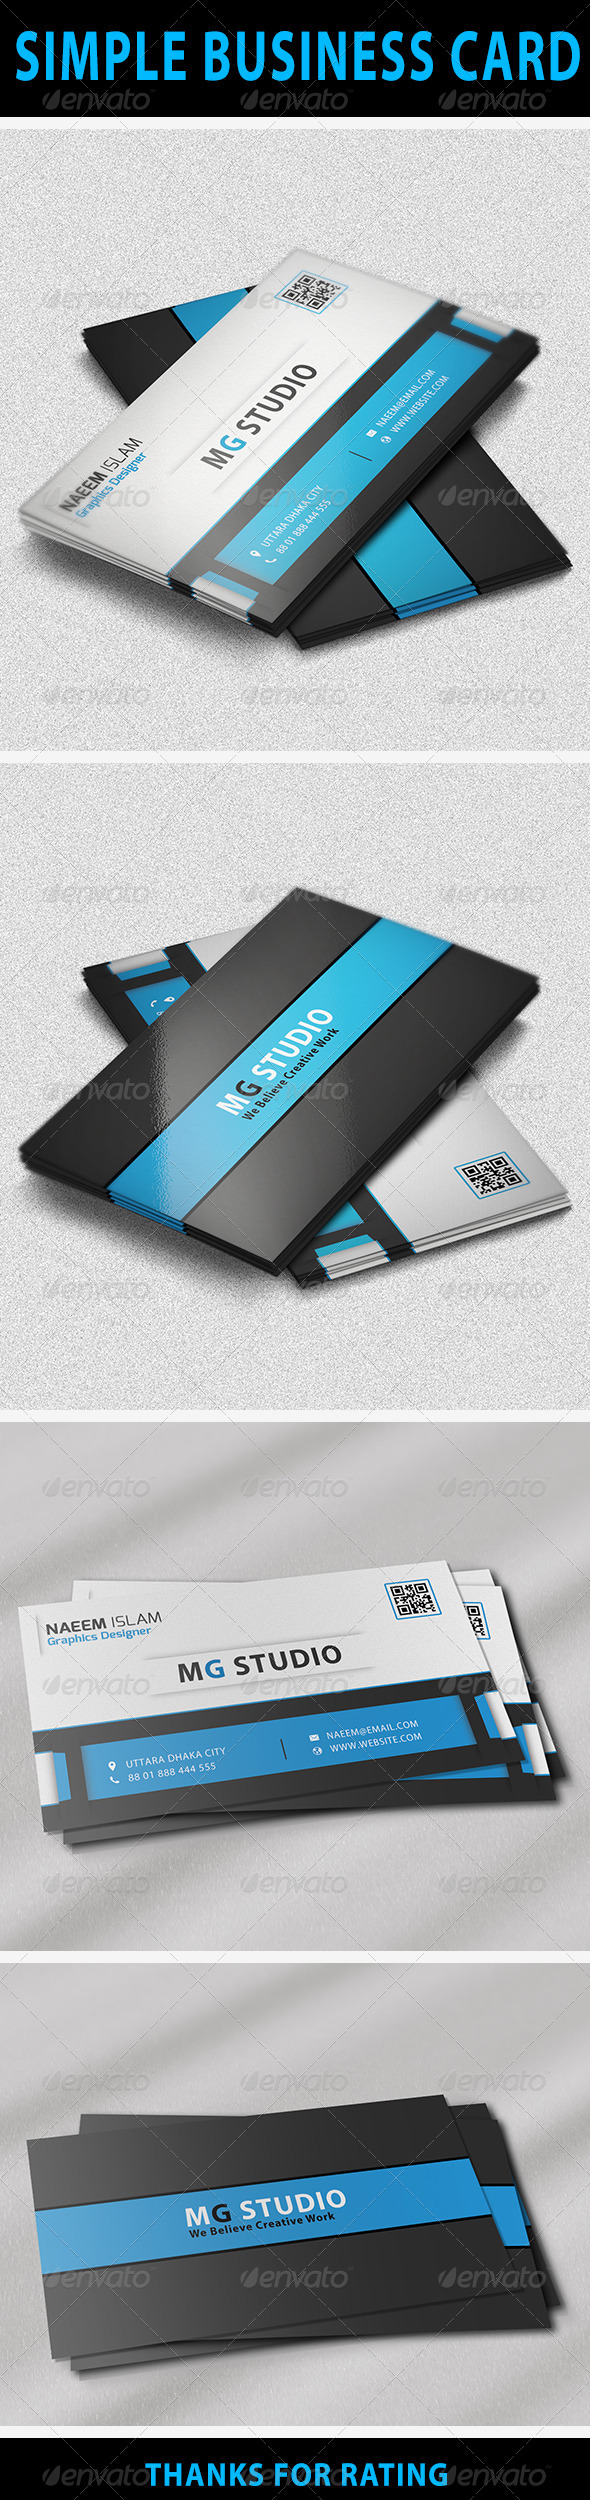 Simple business card simple business card features easy to edit optimized for printing 300 reheart Images